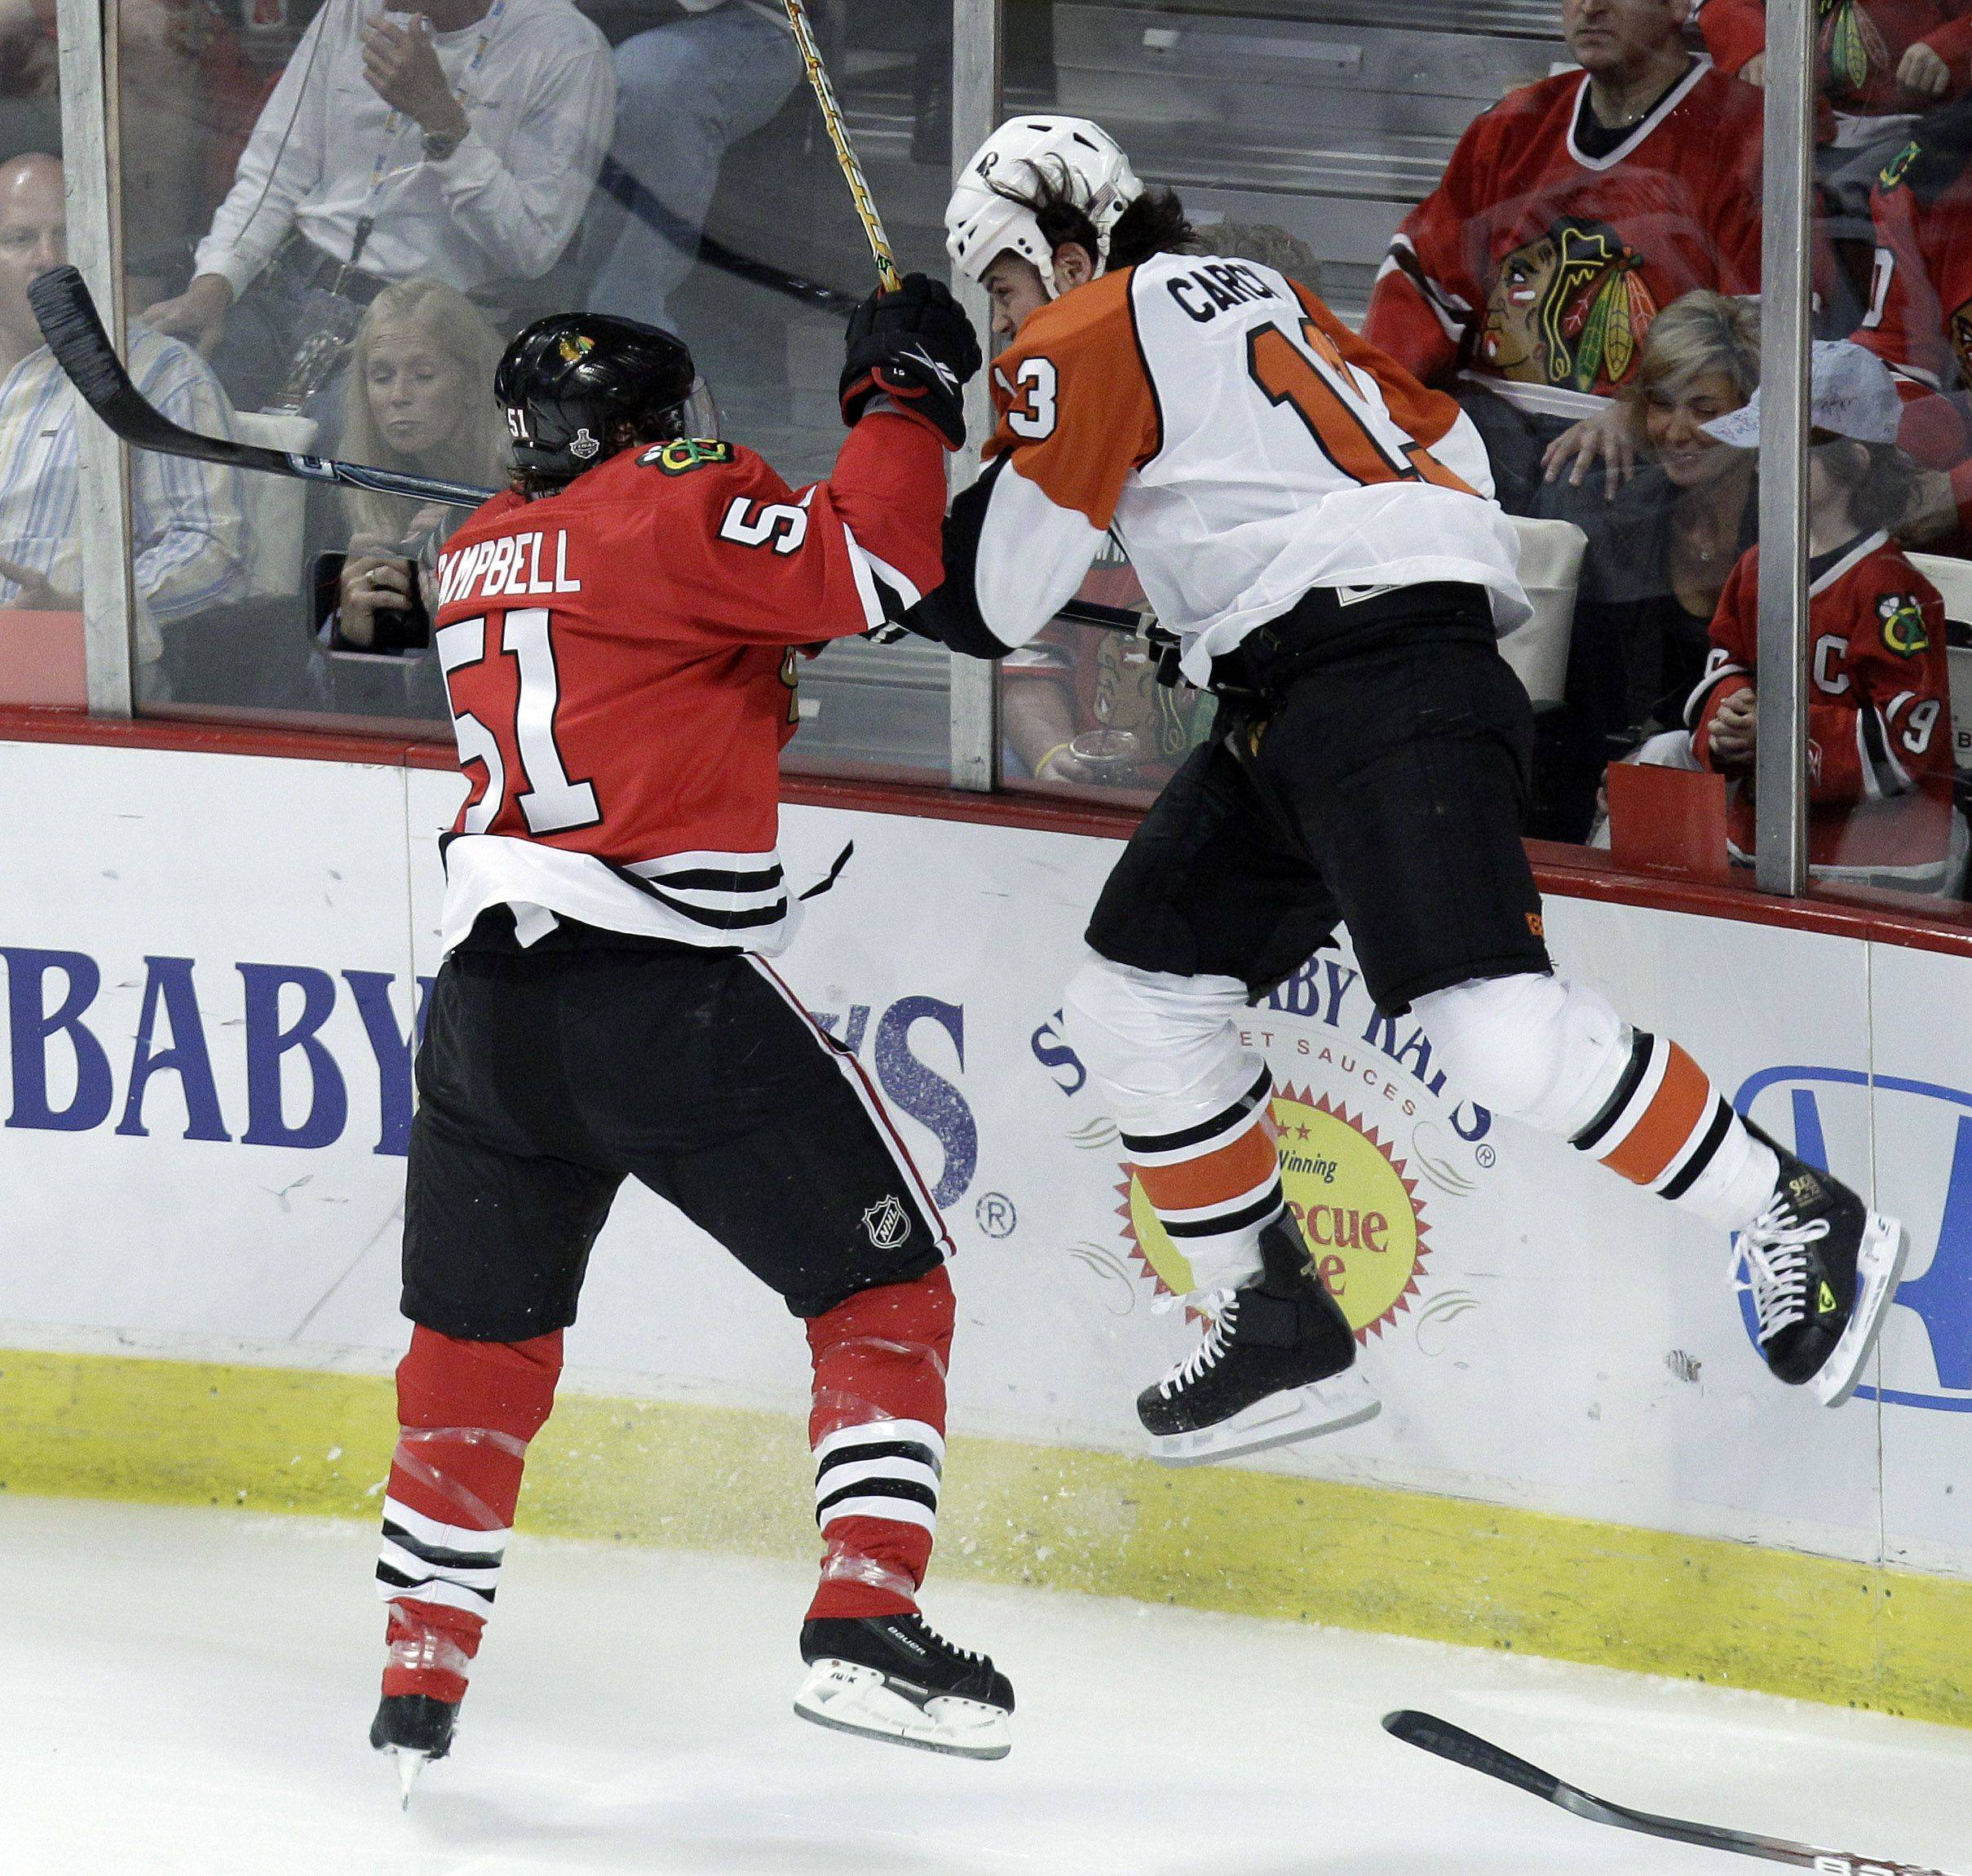 Blackhawks defenseman Brian Campbell (51) checks Philadelphia Flyers left wing Daniel Carcillo (13) into the boards in the first period of Game 2 of the Stanley Cup NHL hockey in 2010.